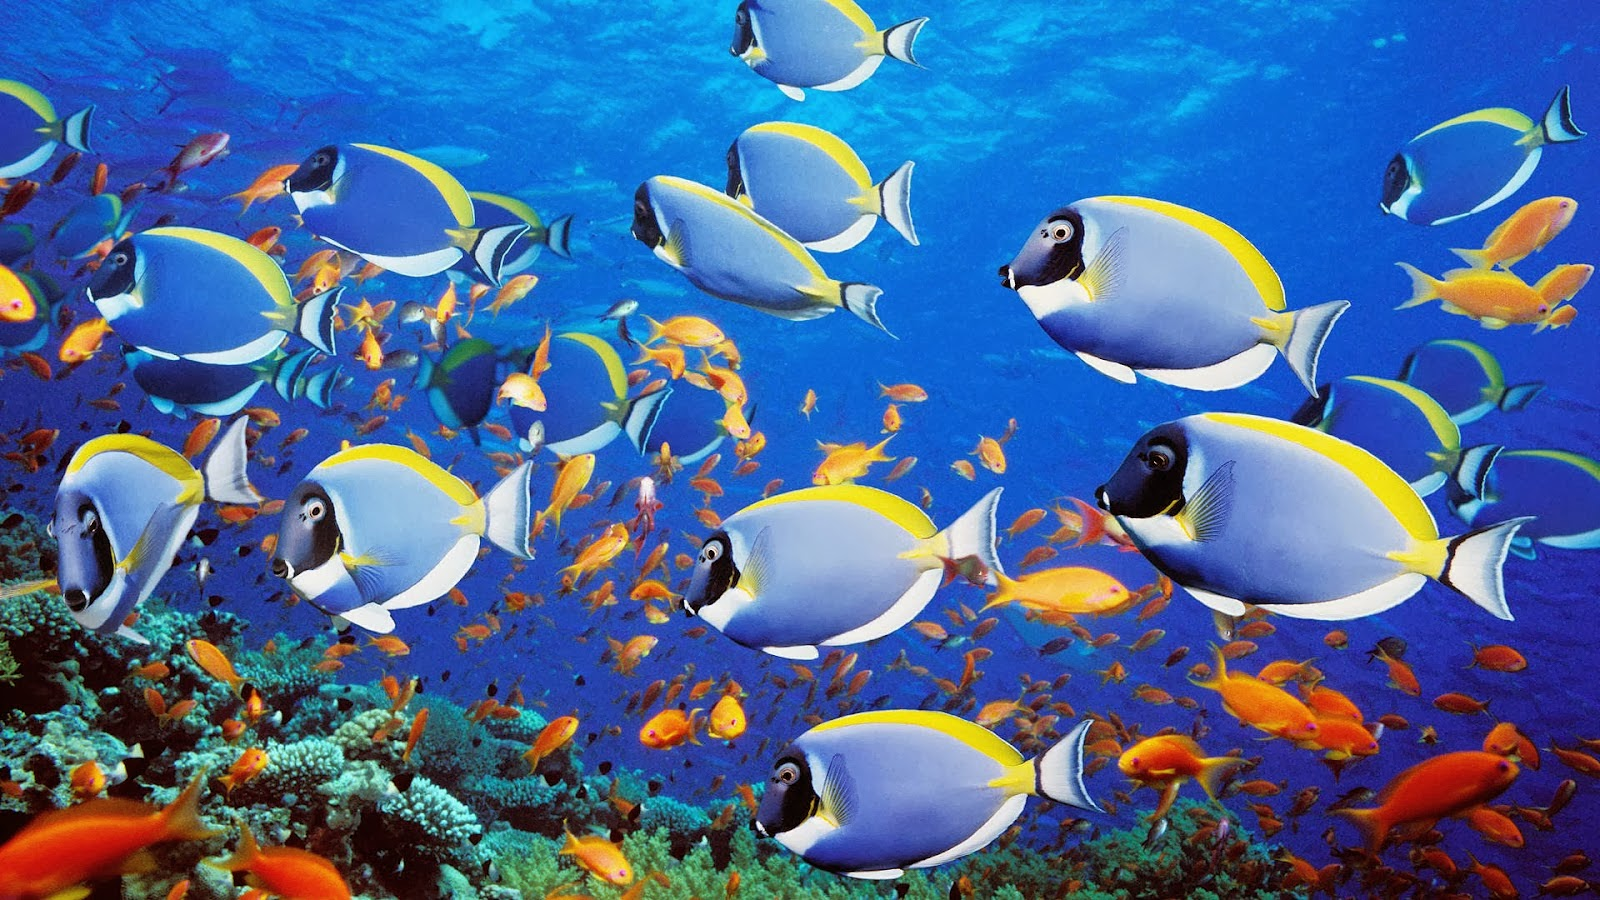 Animated moving fish backgrounds - Moving animal wallpapers ...